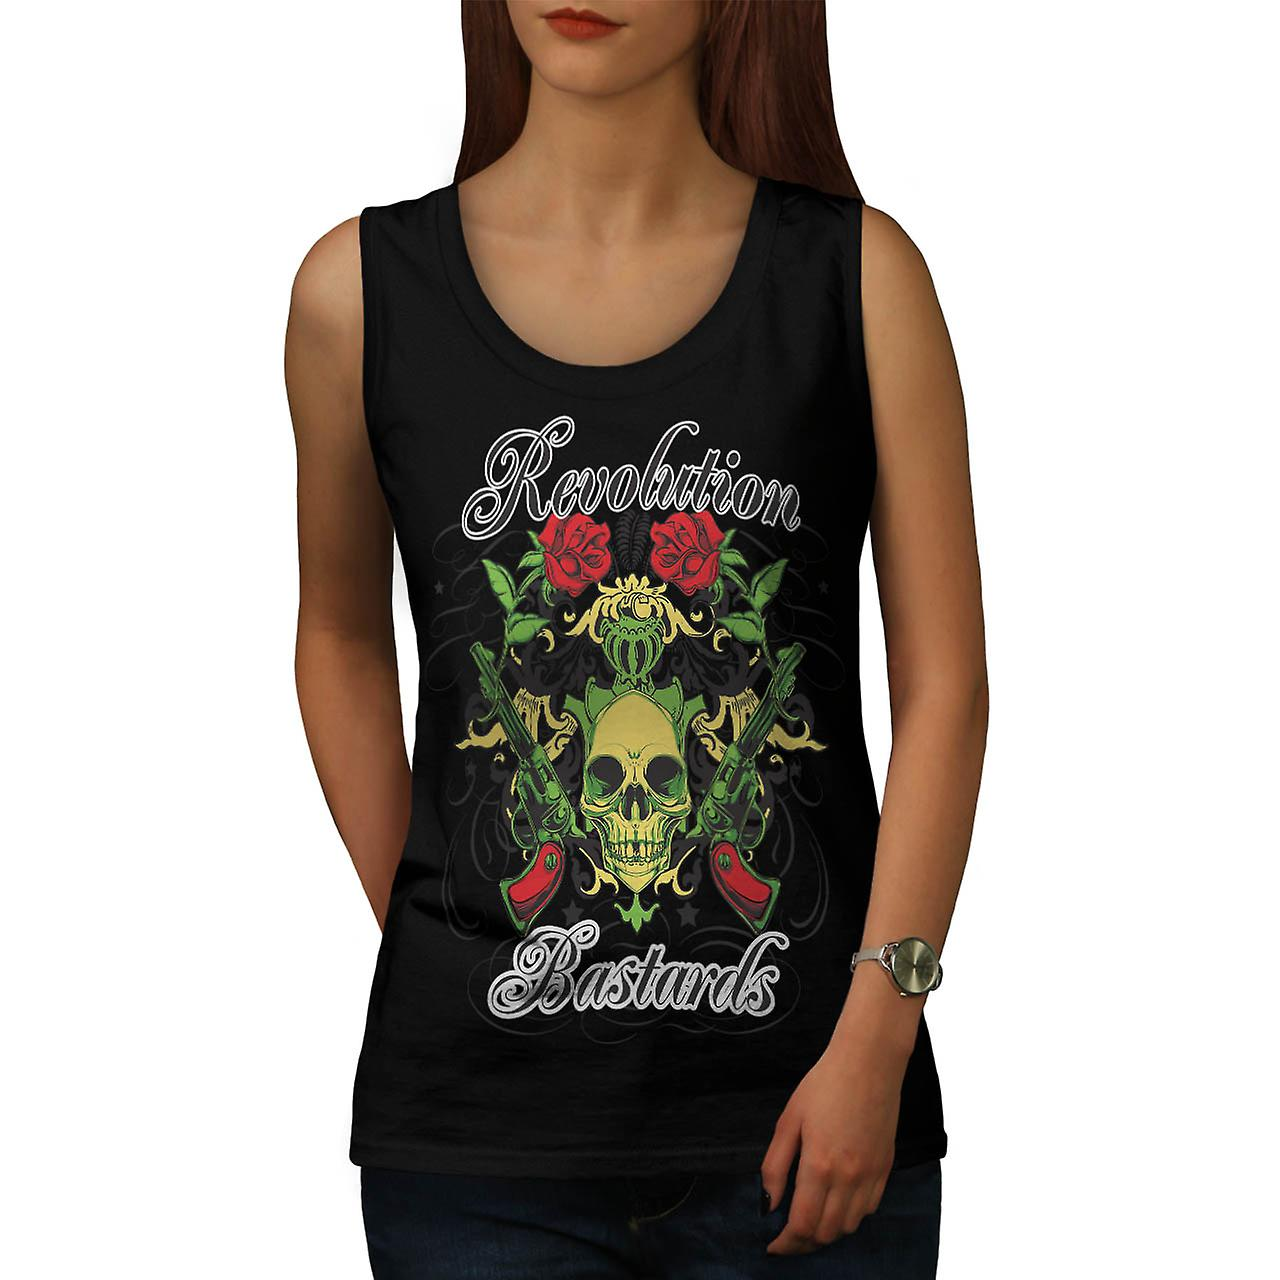 Revolution Bastards Roses Guns Women Black Tank Top | Wellcoda